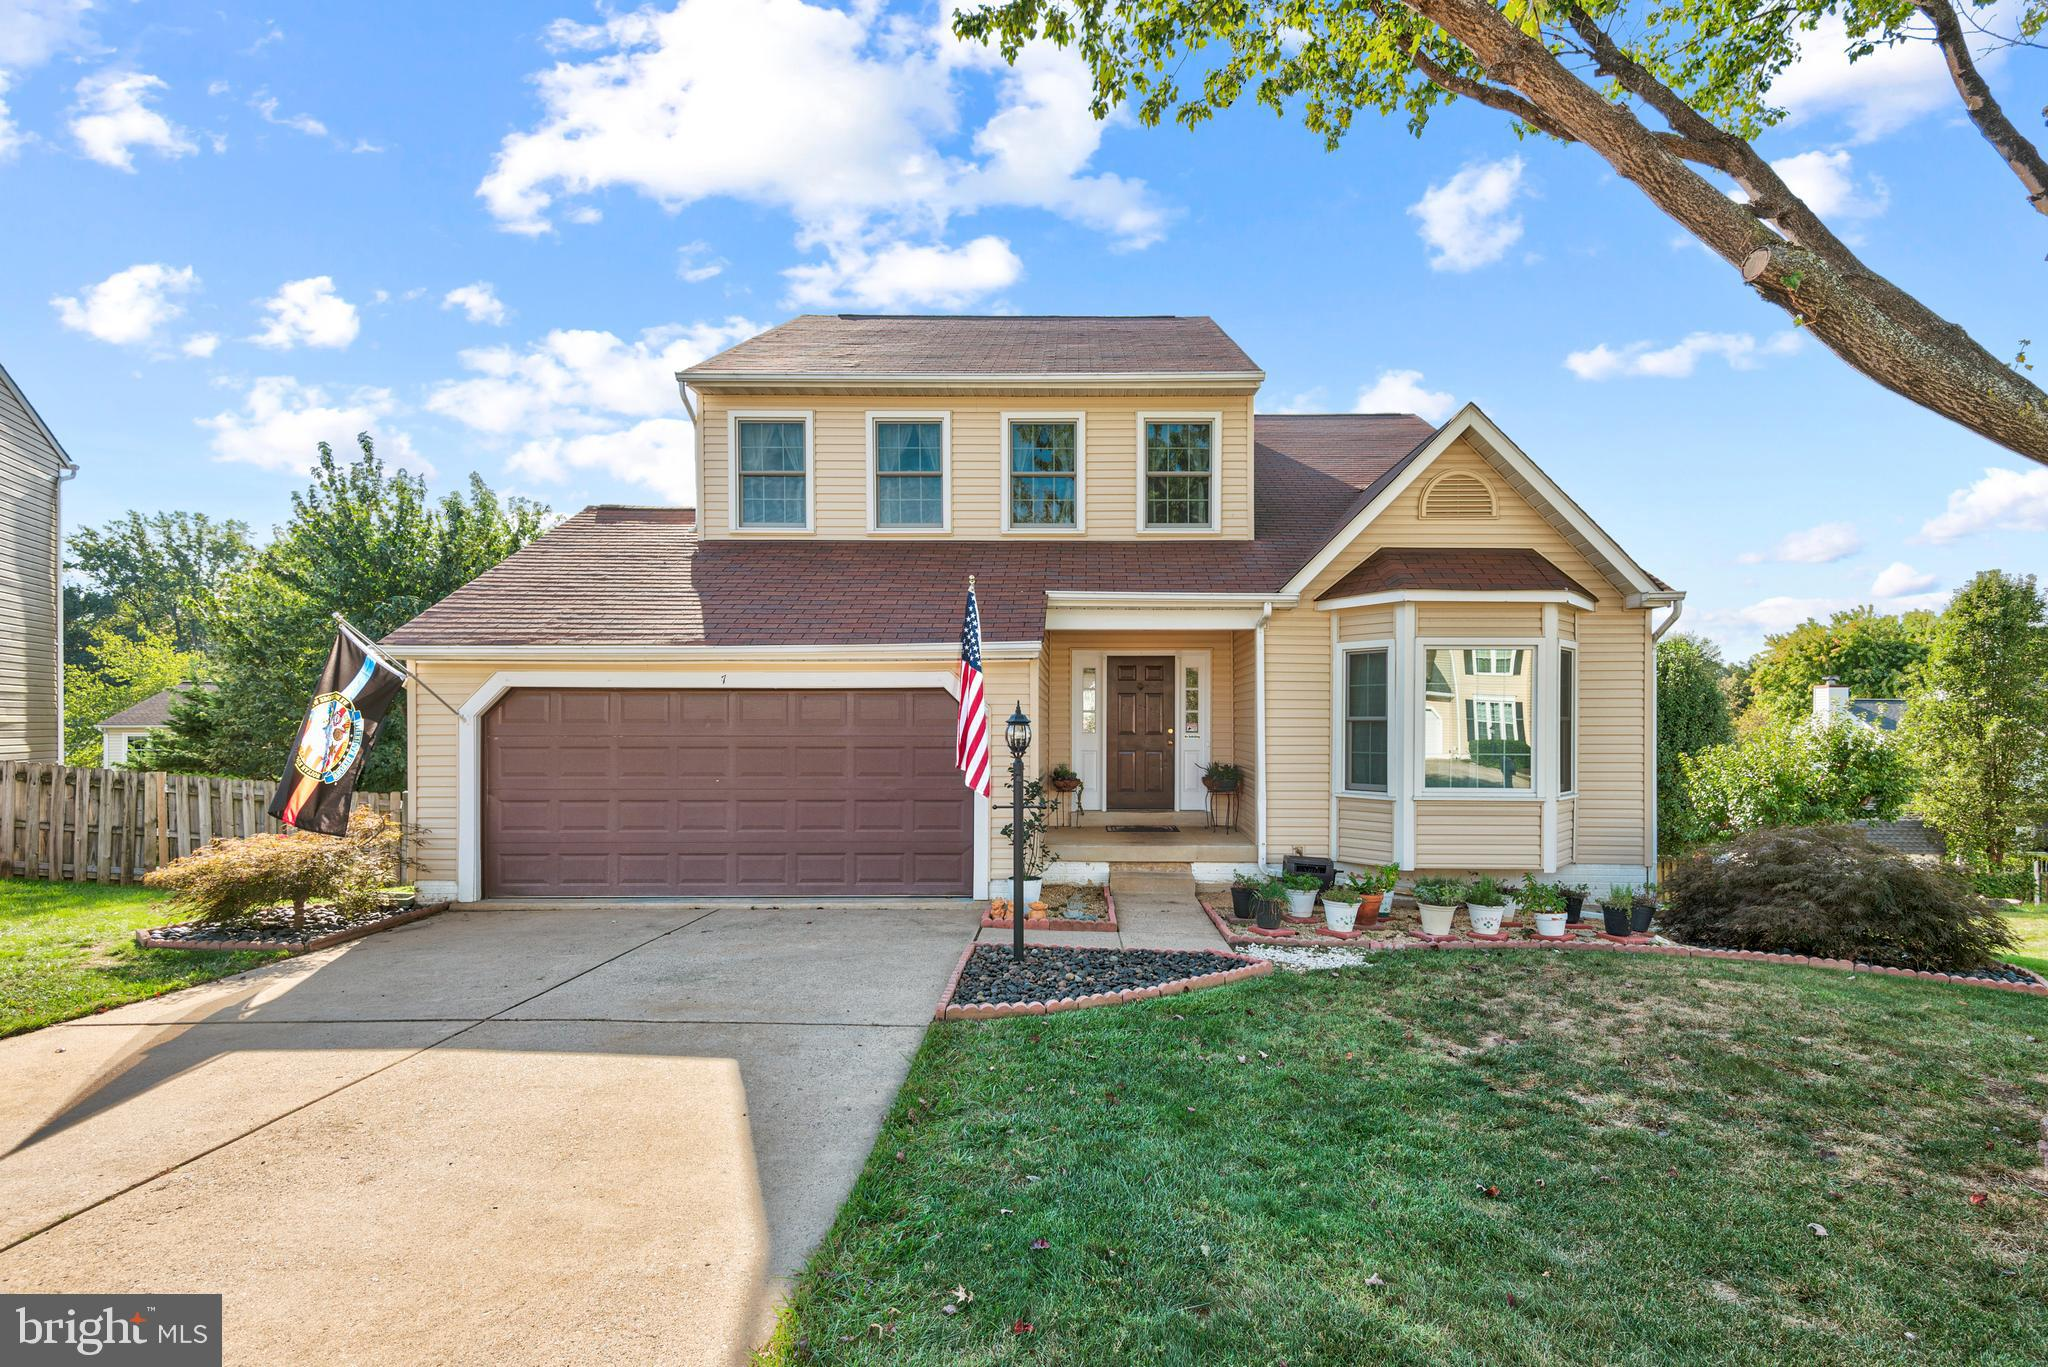 OPEN HOUSE Saturday 10/16 - 11:30-2:30  Please remove shoes upon entry, booties provided   Many upda